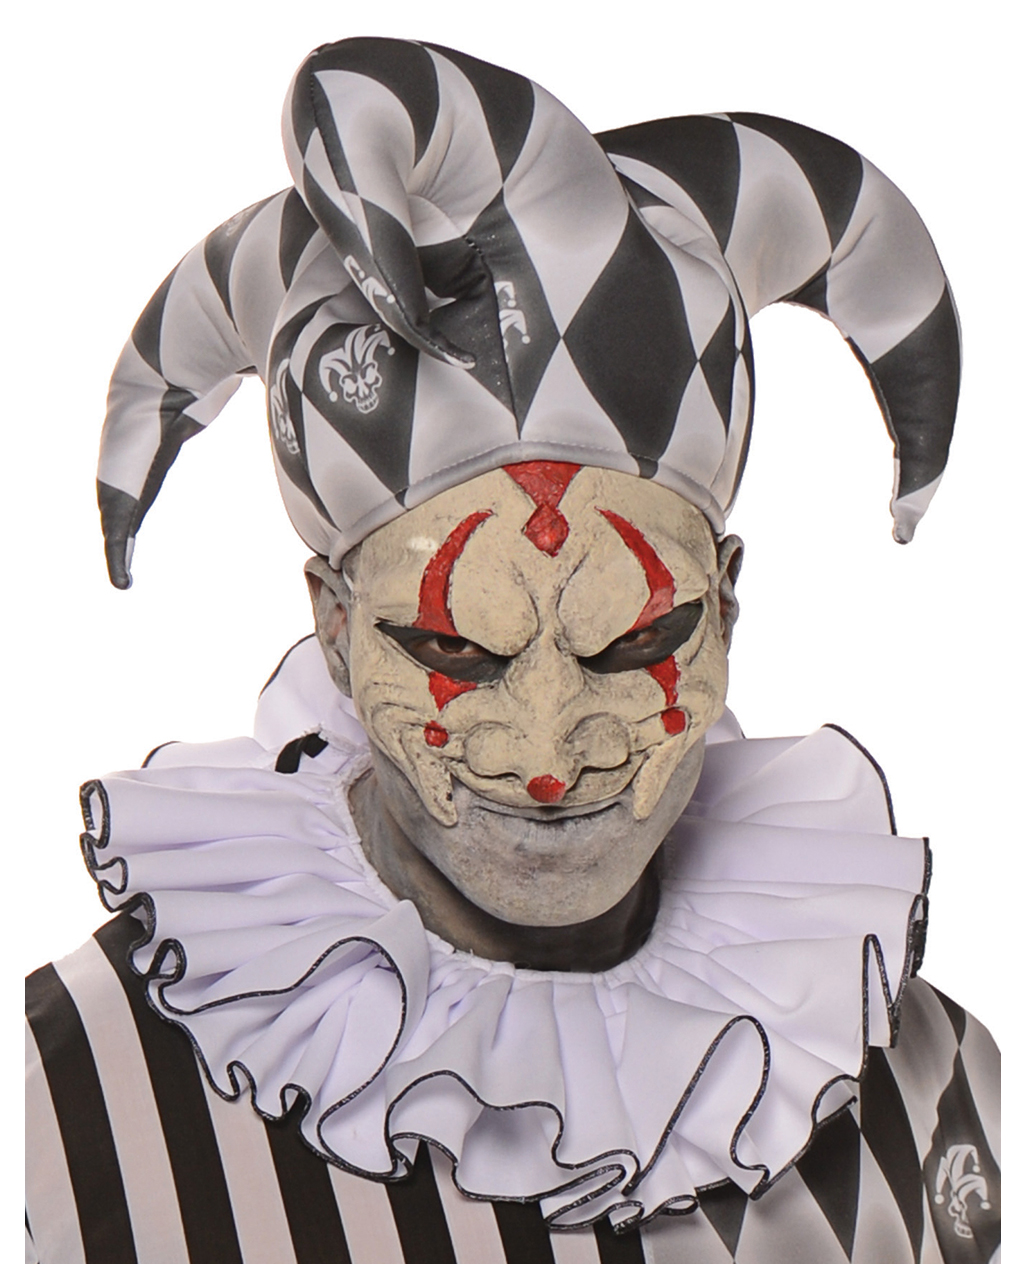 62a5eef567e Harlequin half mask as scary clown accessory